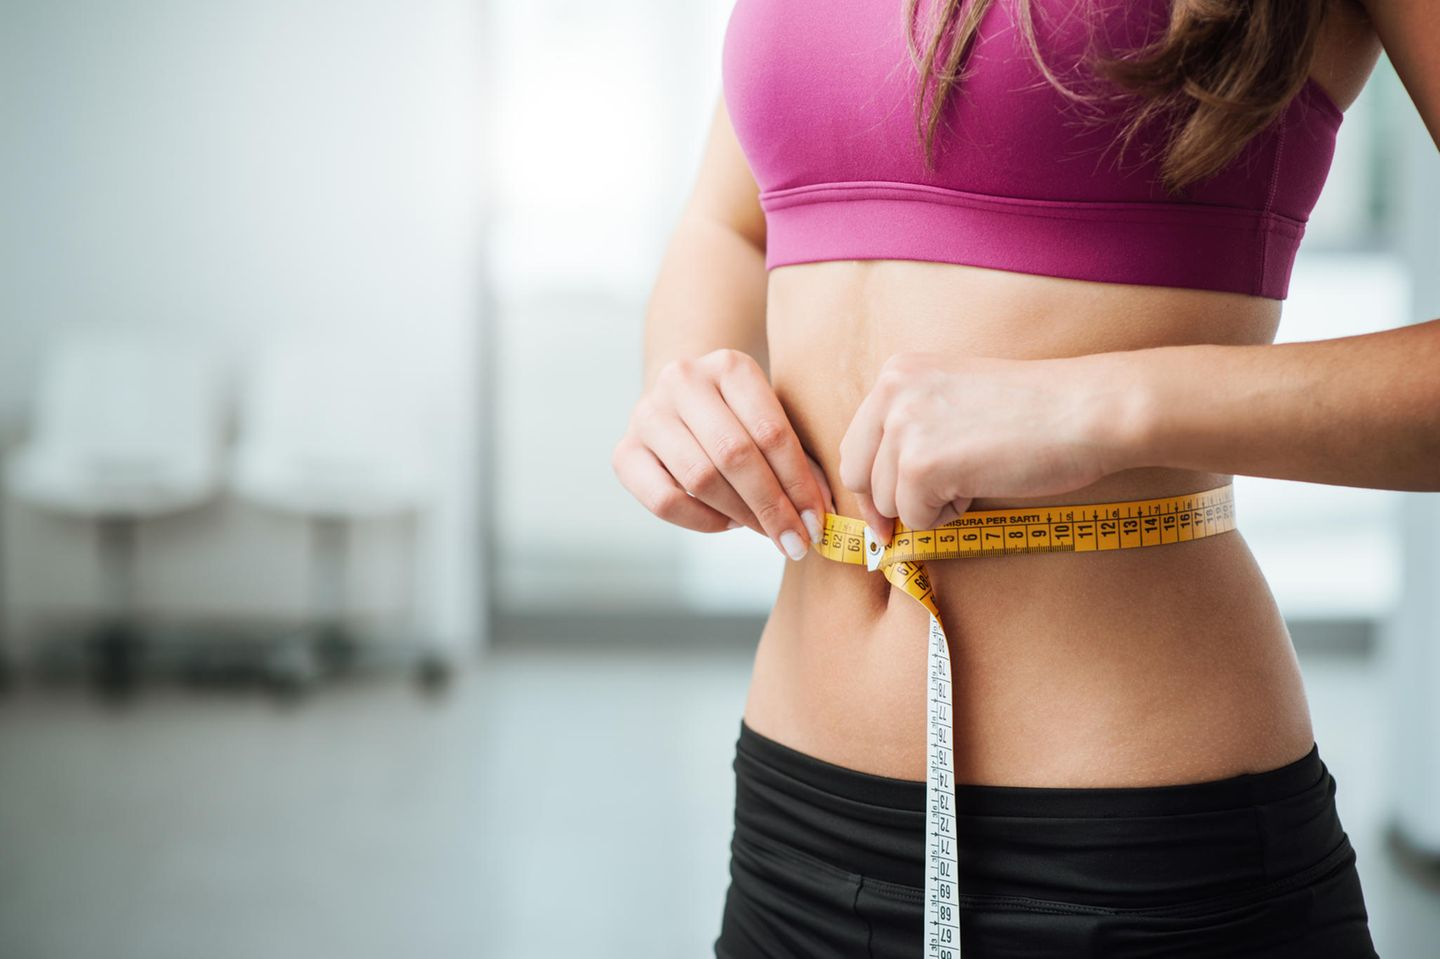 Lose weight on the stomach: woman measures her waist with a tape measure